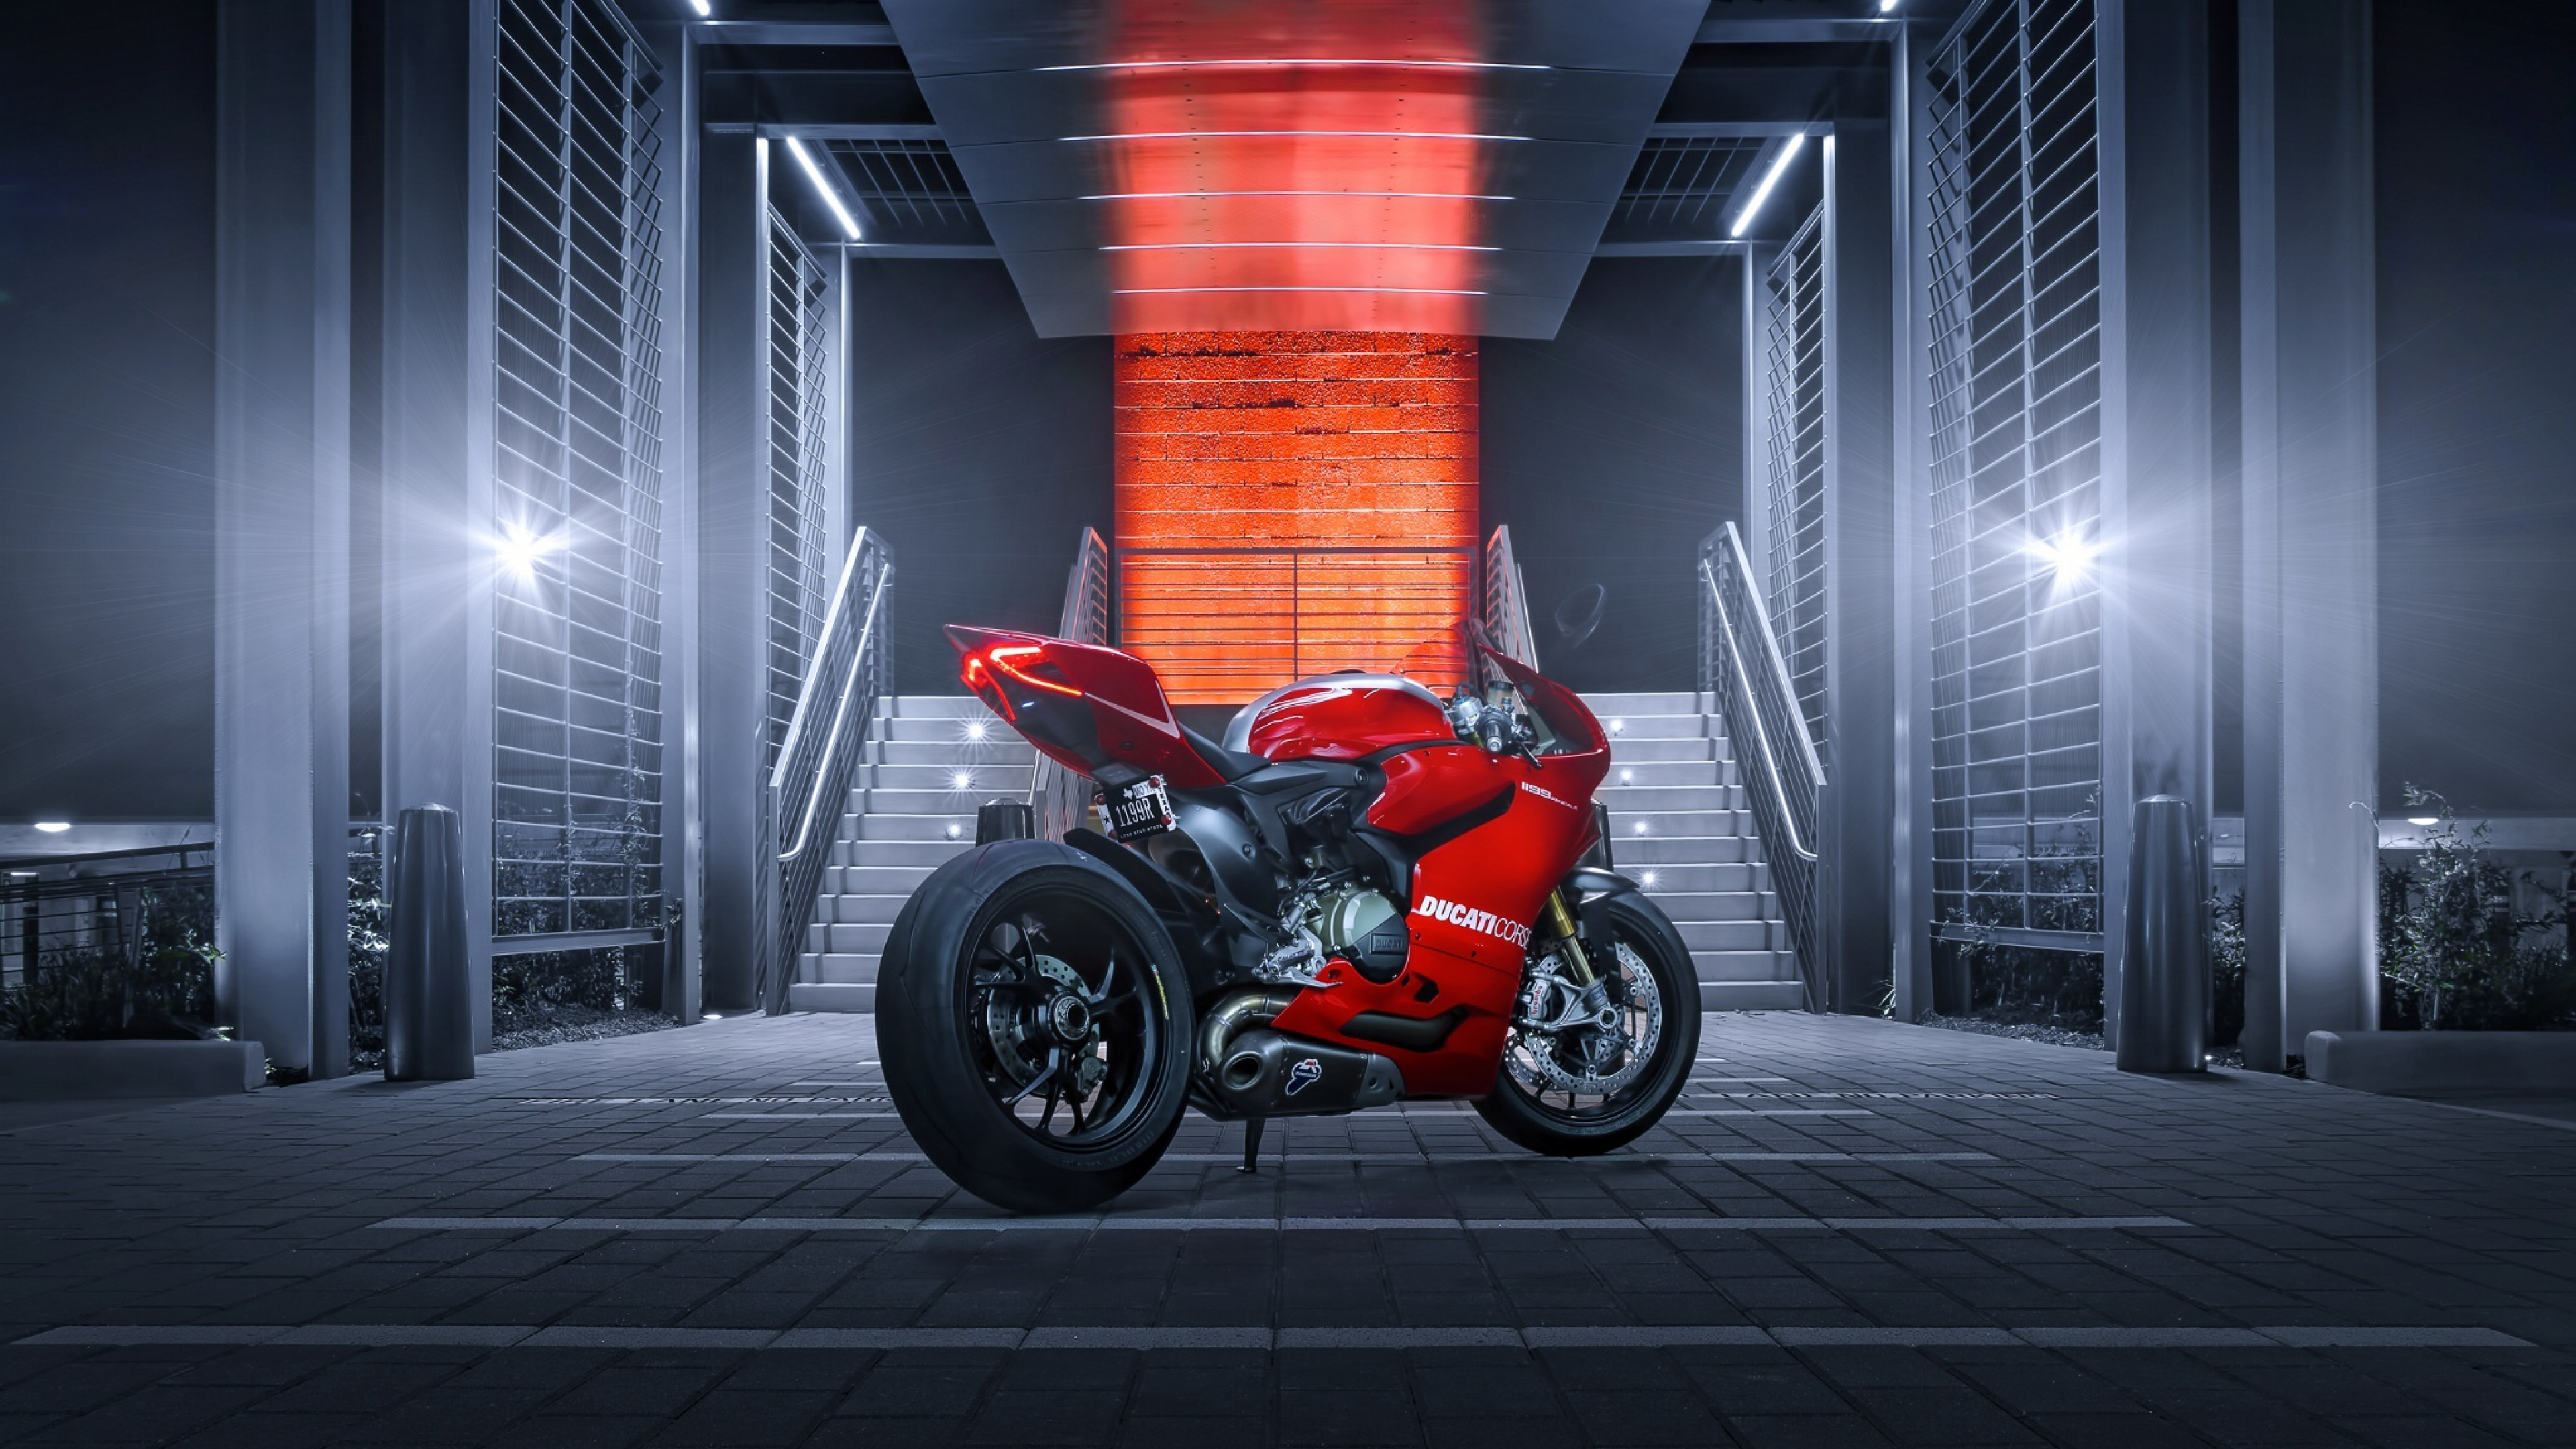 Ducati 1199 Red, HD Bikes, 4k Wallpapers, Images, Backgrounds, Photos and Pictures